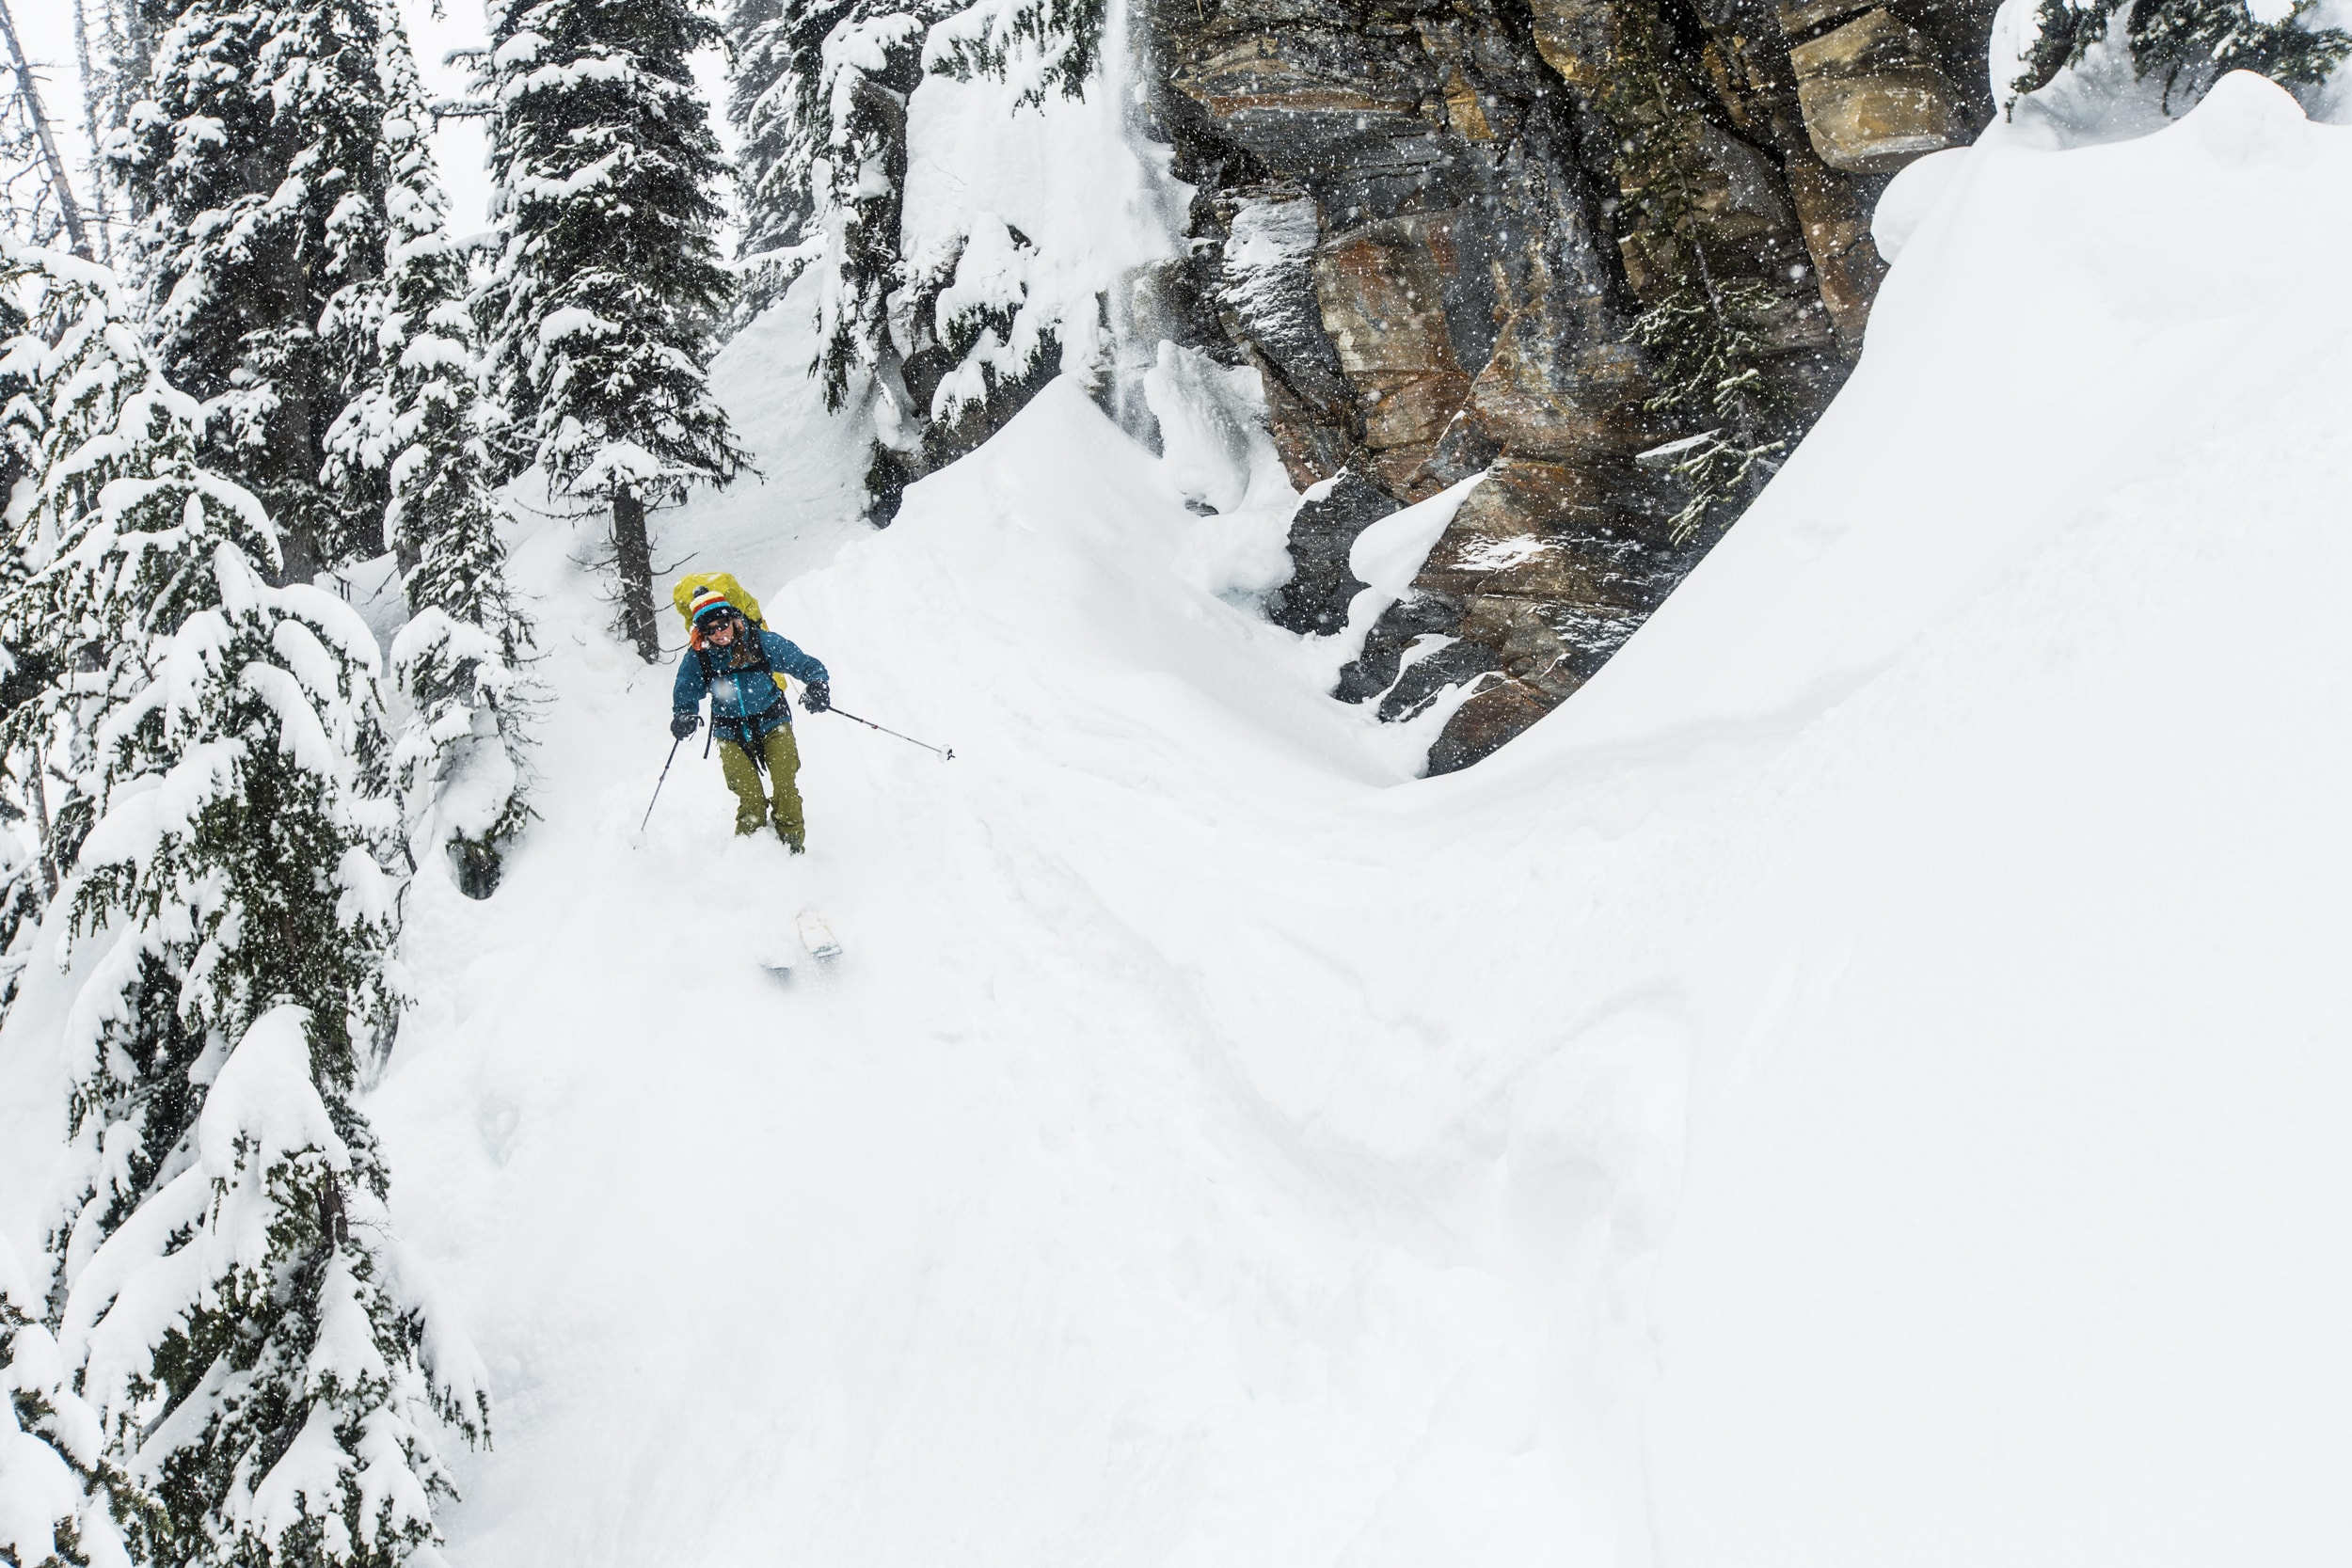 Backcountry skiing Zincton David Moskowitz